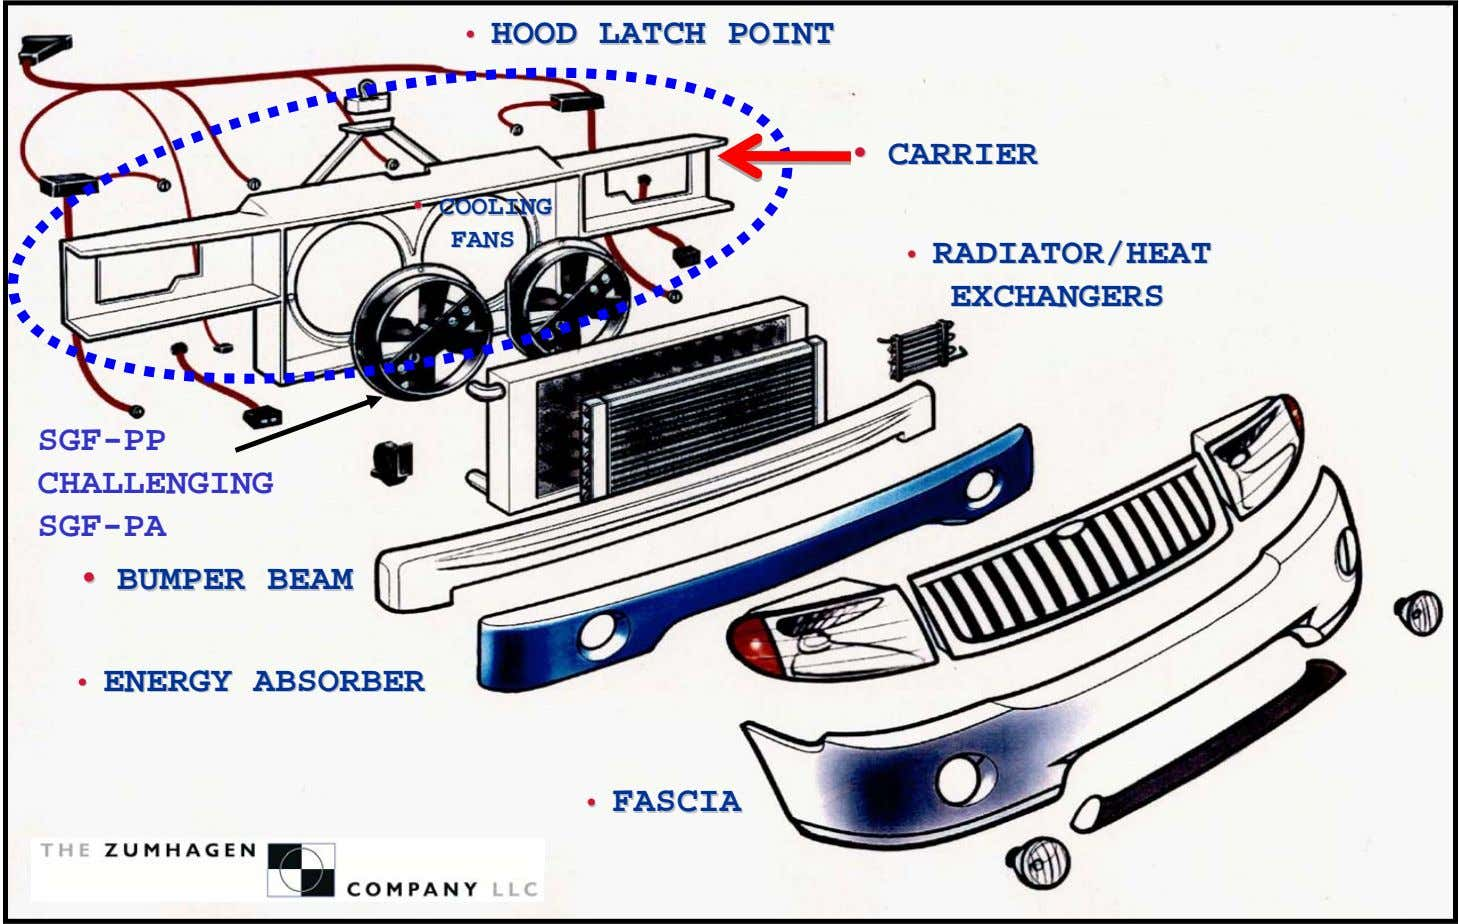 •• HOODHOOD LATCHLATCH POINTPOINT •• CARRIERCARRIER •• COOLINGCOOLING FANSFANS ••